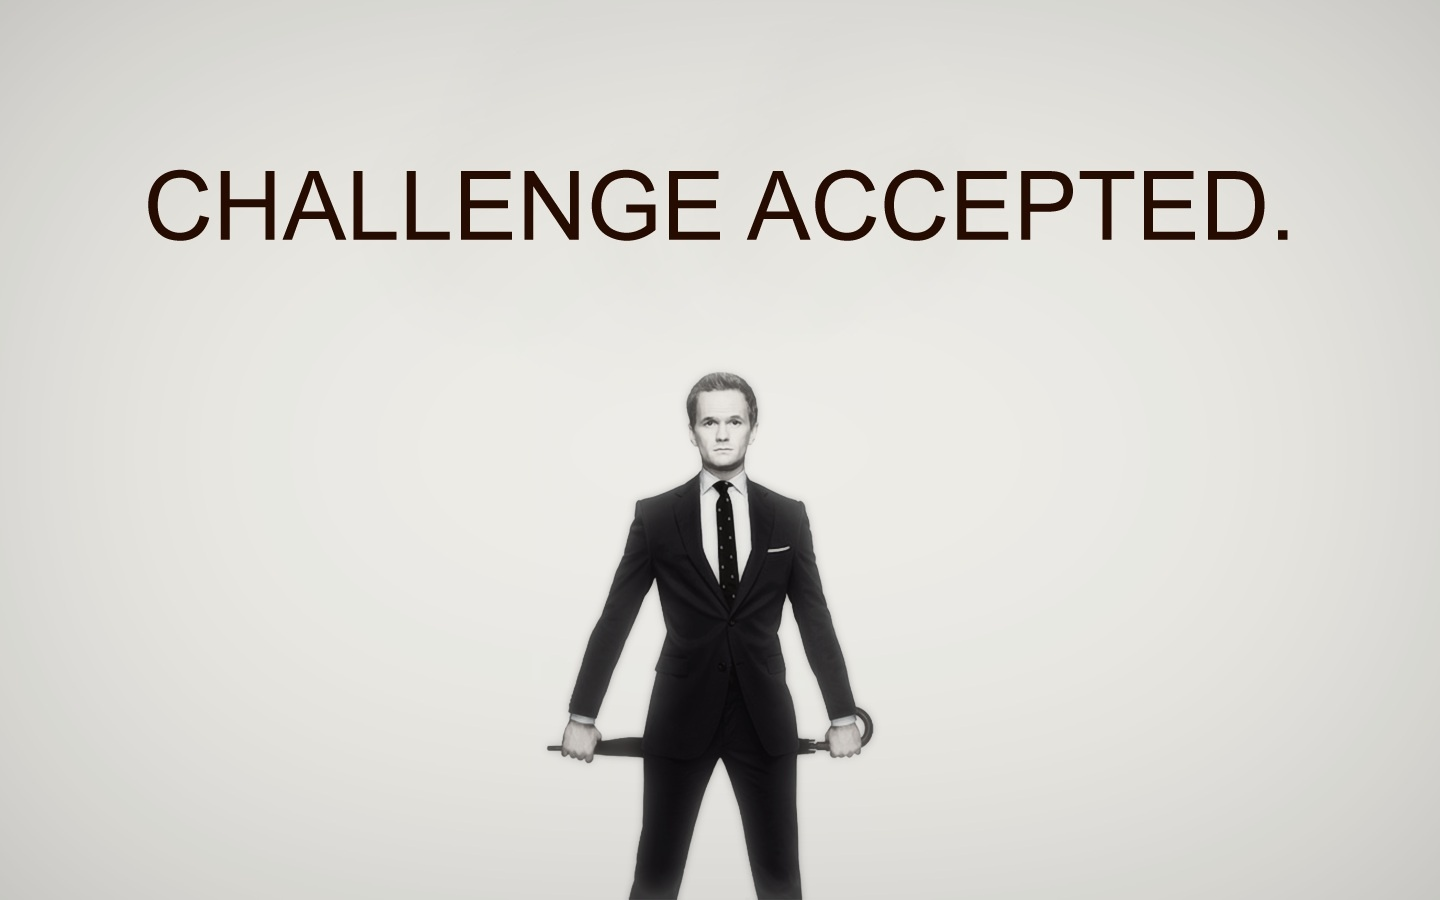 challenge-accepted-wallpapers_31078_1440x900